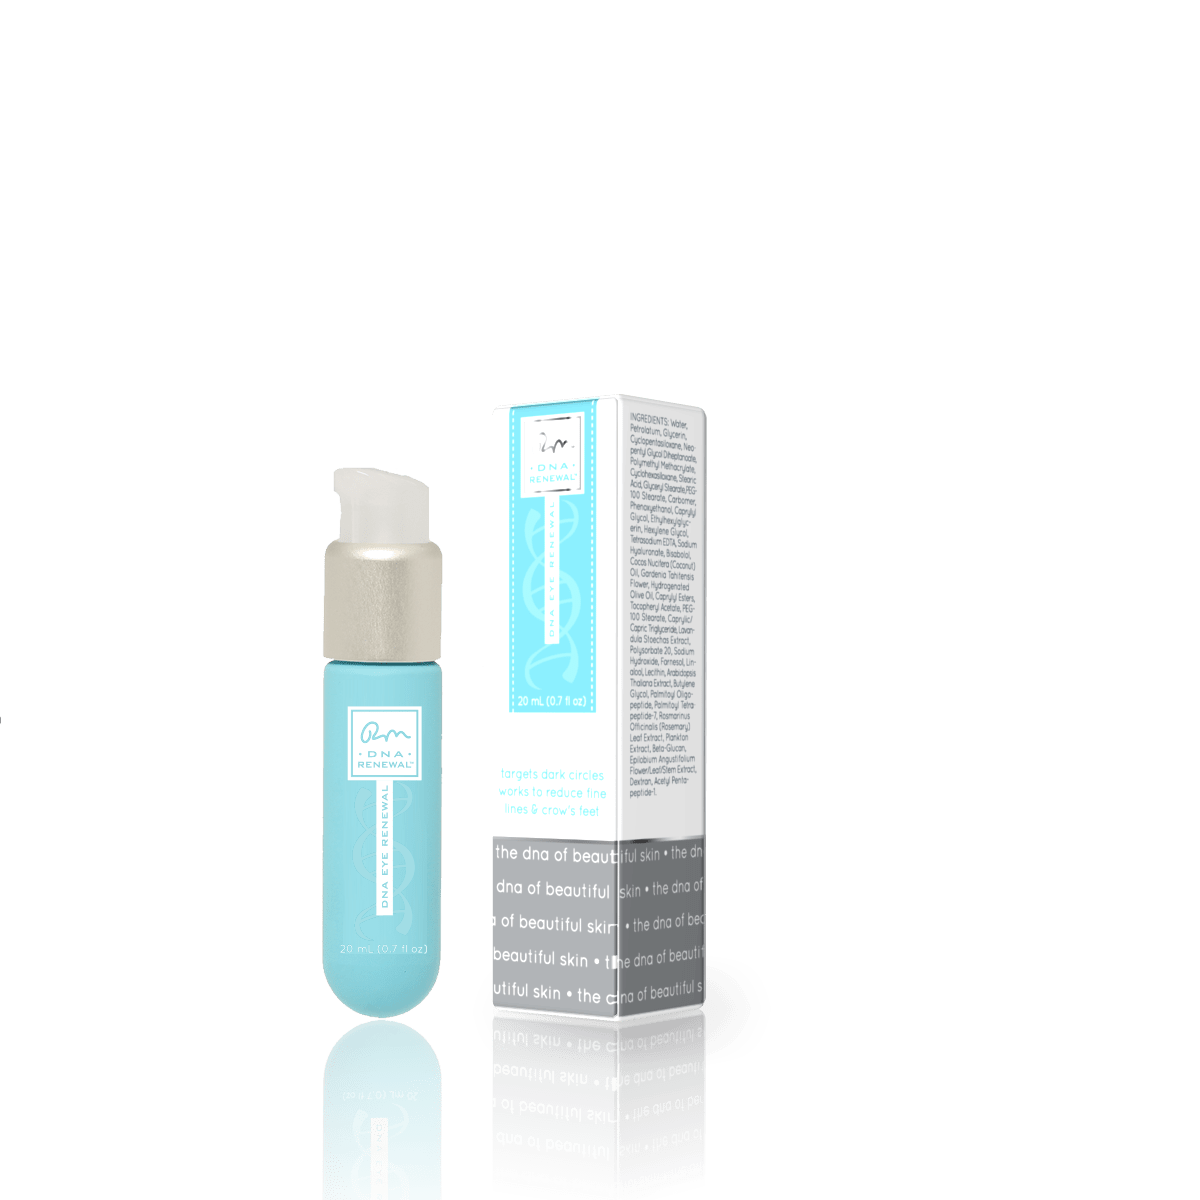 Dna Products Skin Care